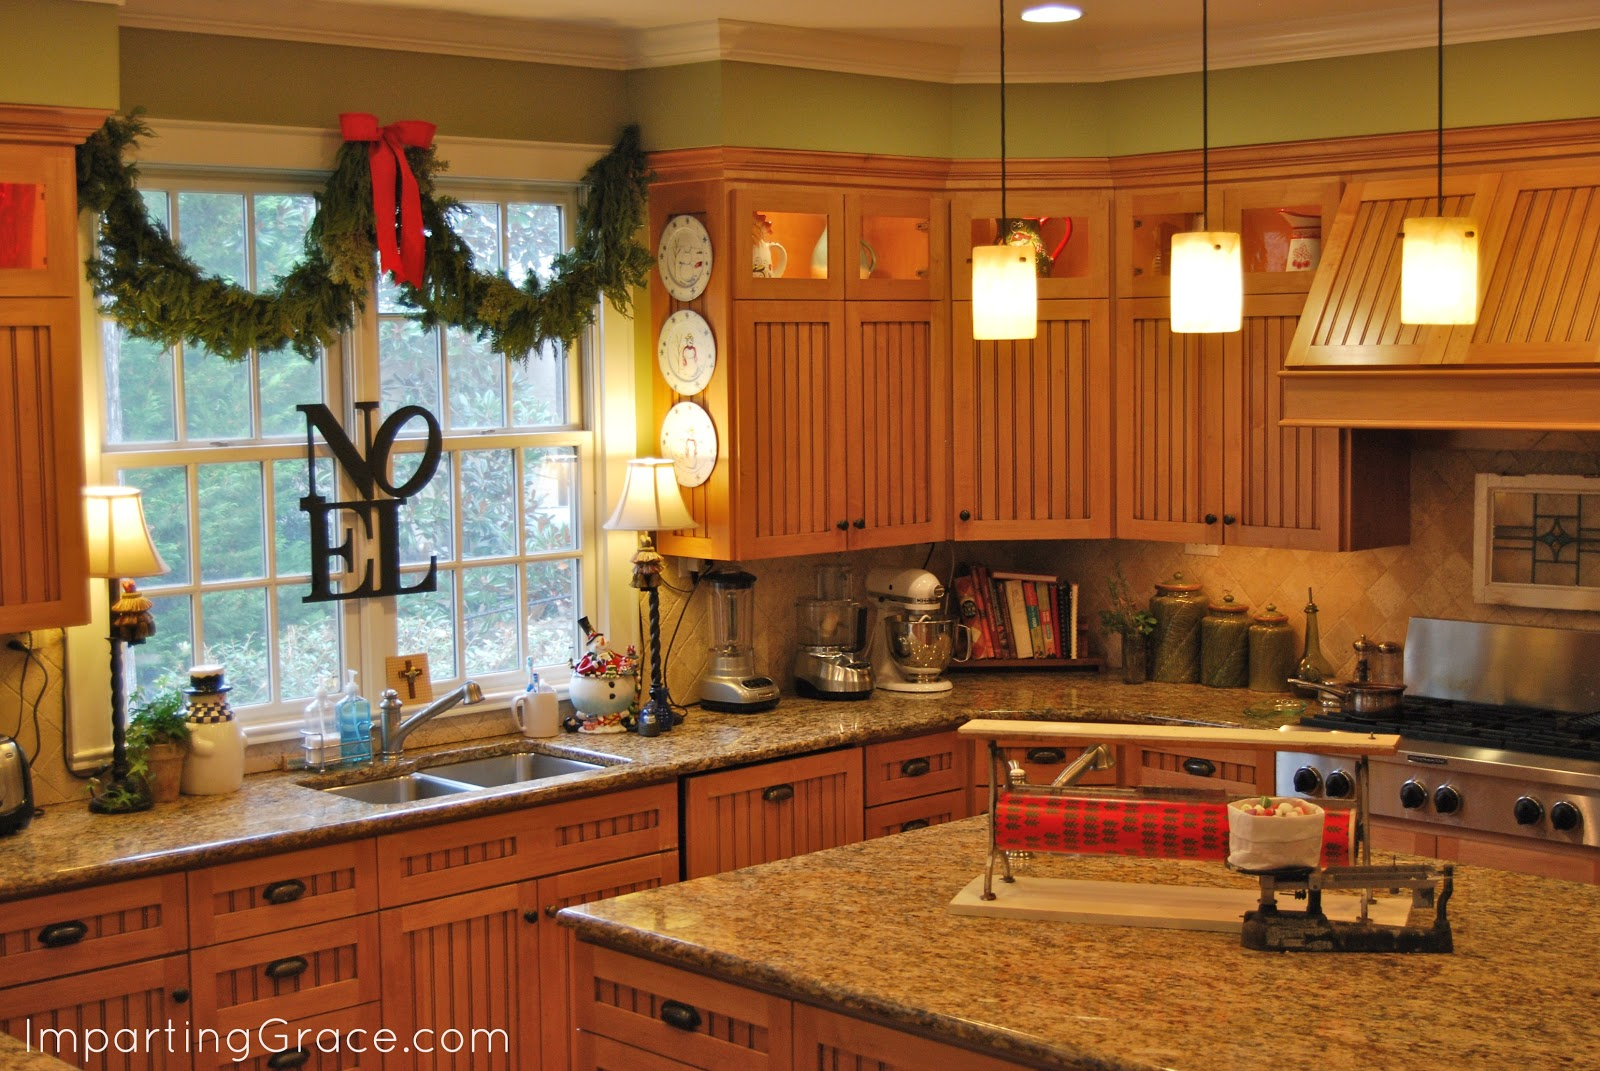 Imparting grace dollar store christmas decorating for Countertop decor ideas